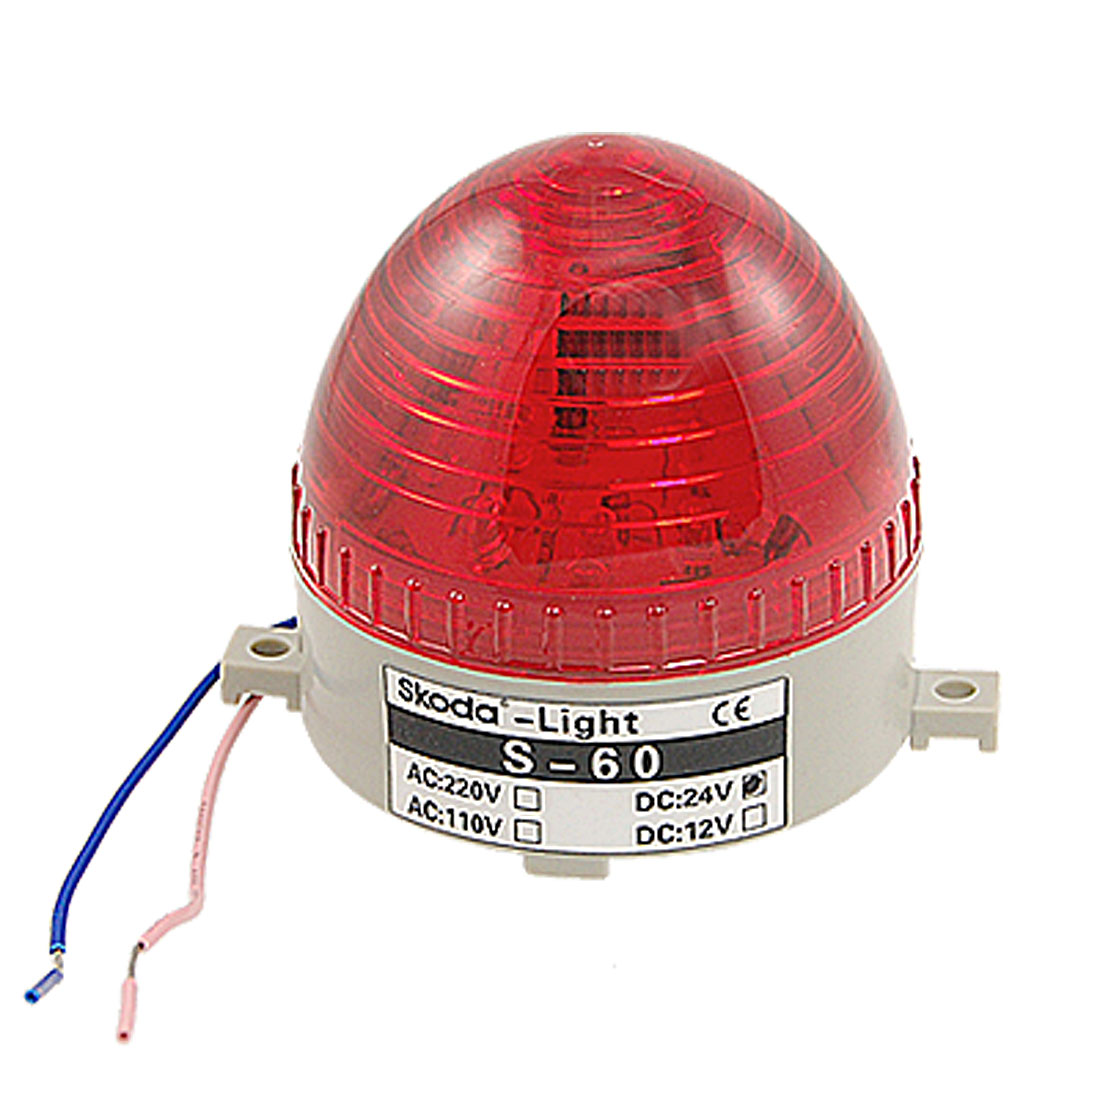 DC-24V-Plastic-Housing-Red-LED-Light-Industrial-Warning-Lamp-Ftugw